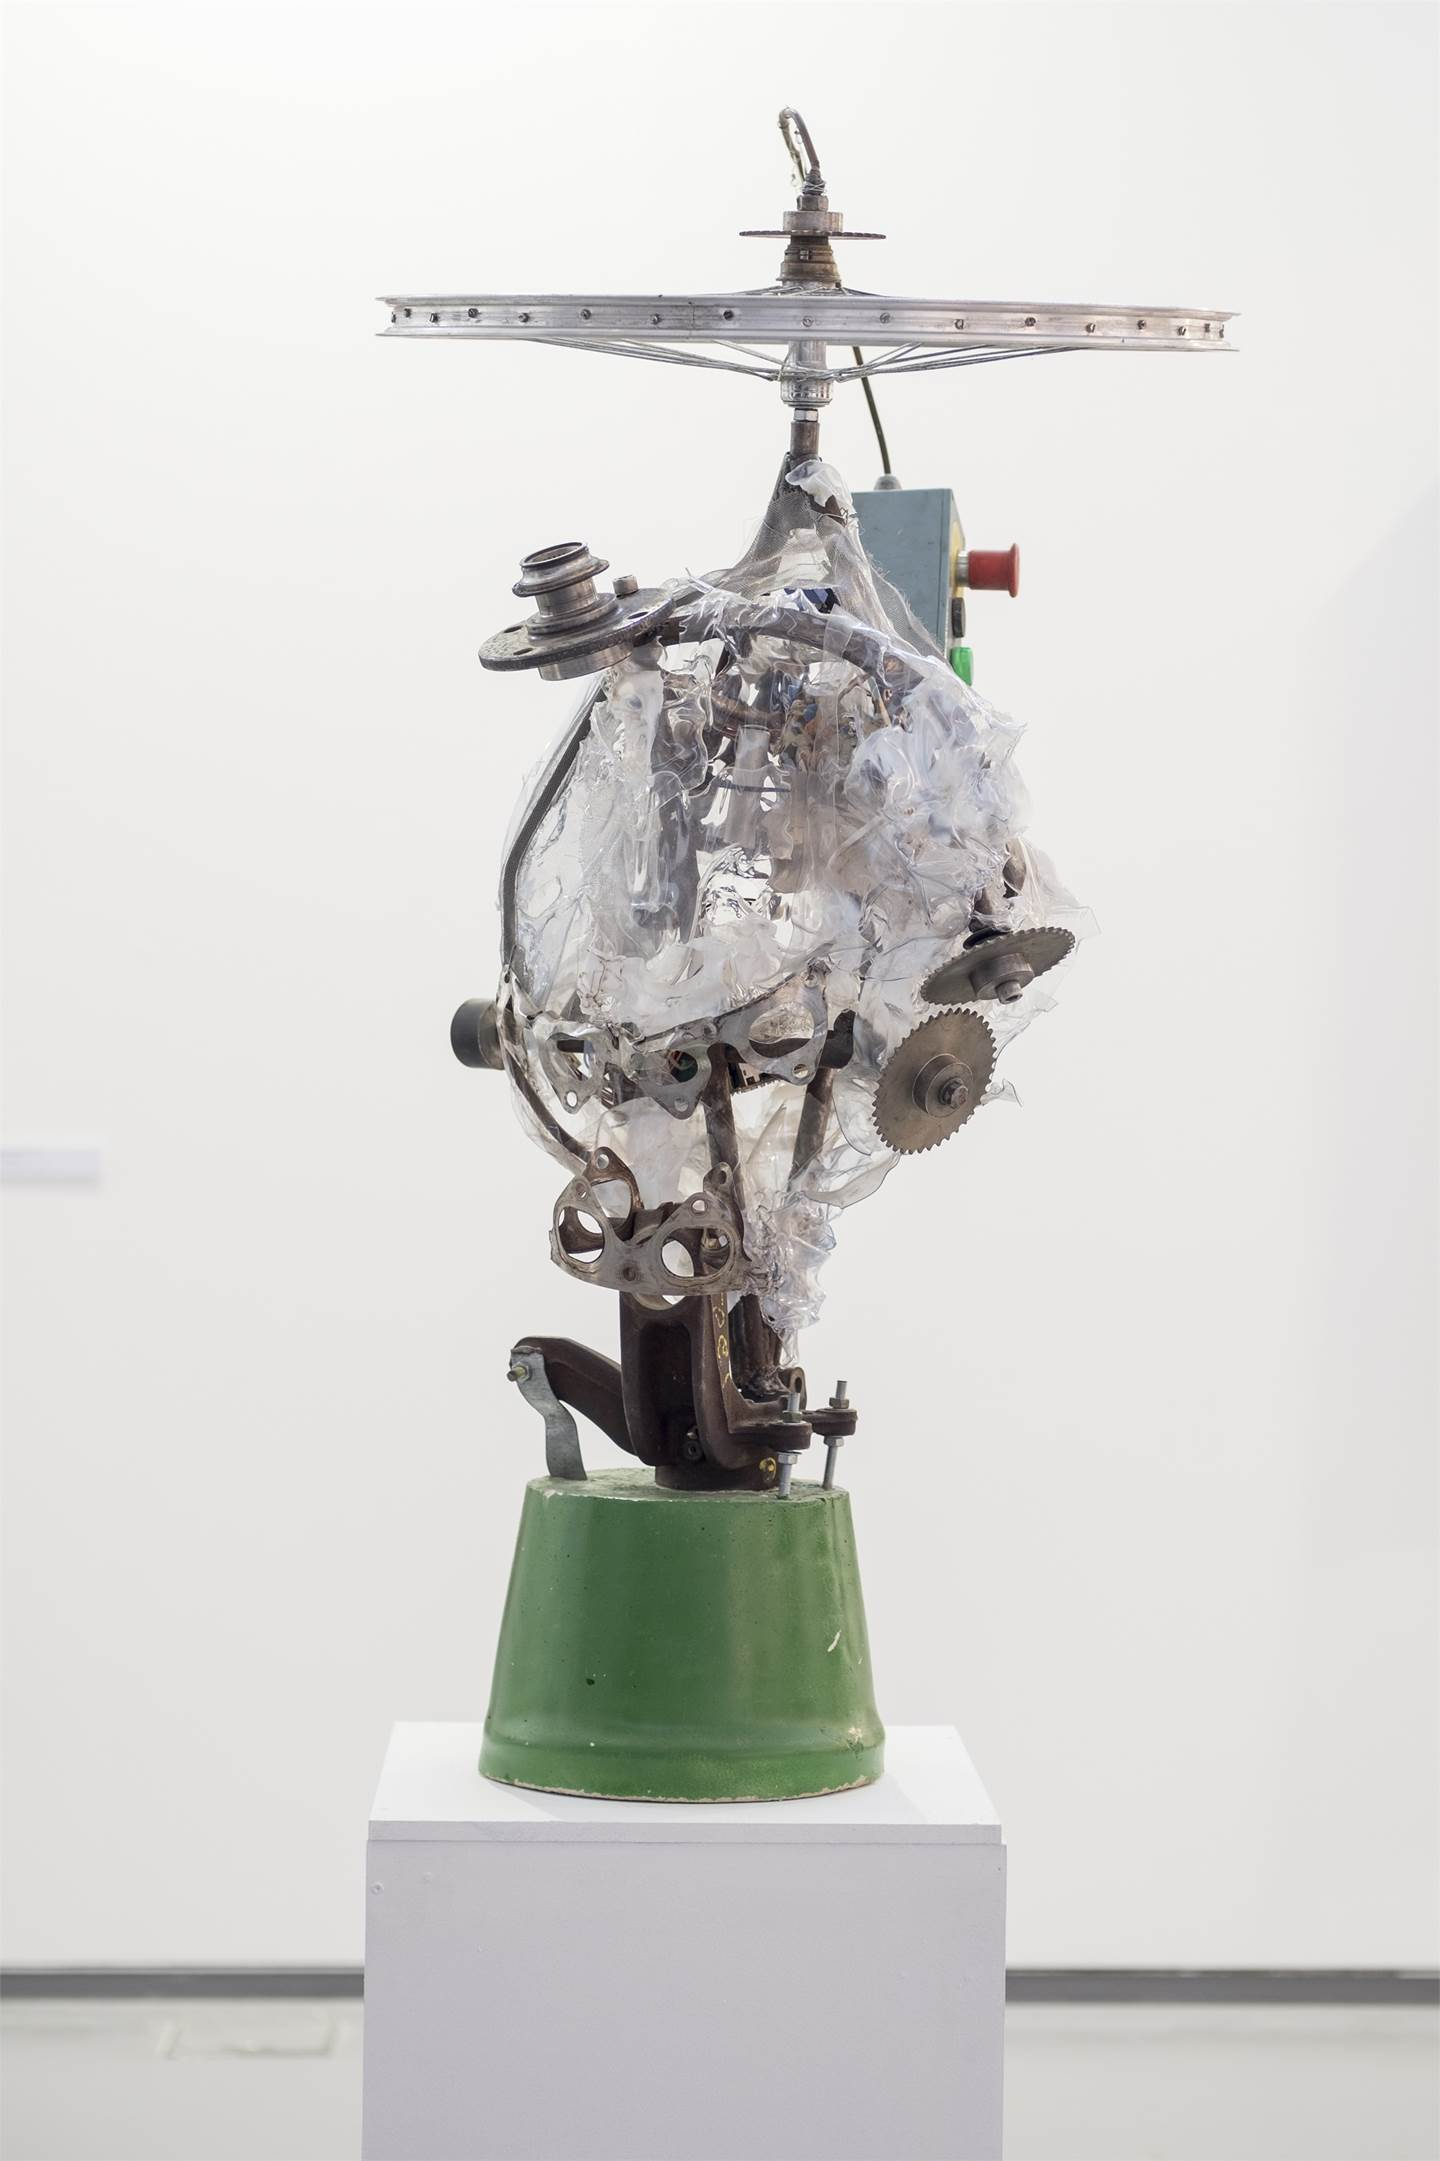 Auto-Retrato, original Abstract Mixed Technique Sculpture by André Silva Neves